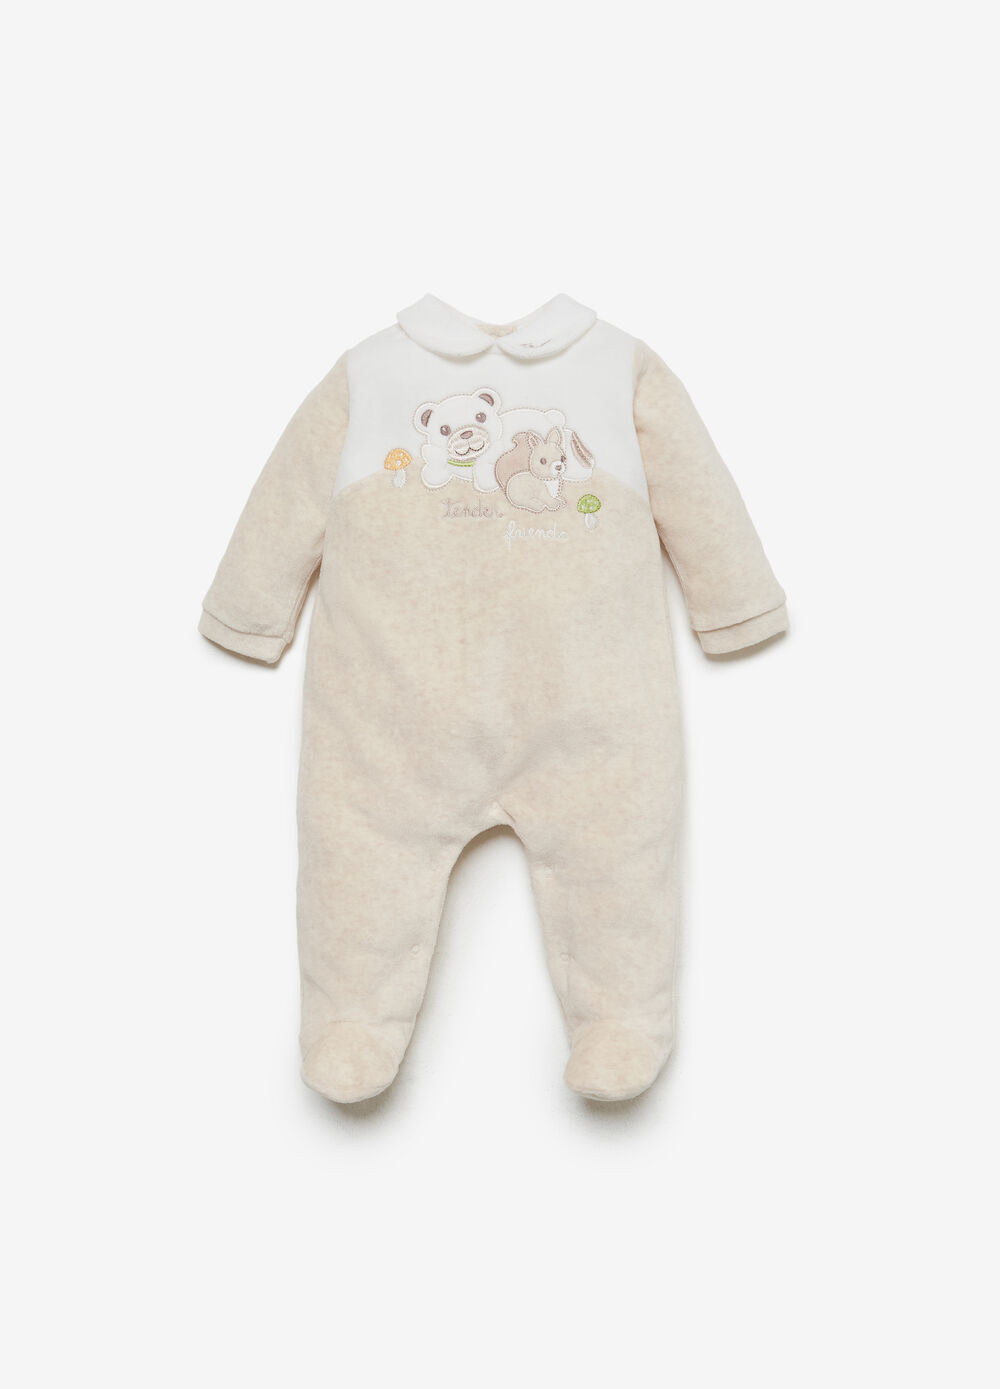 THUN Teddy two-tone romper suit